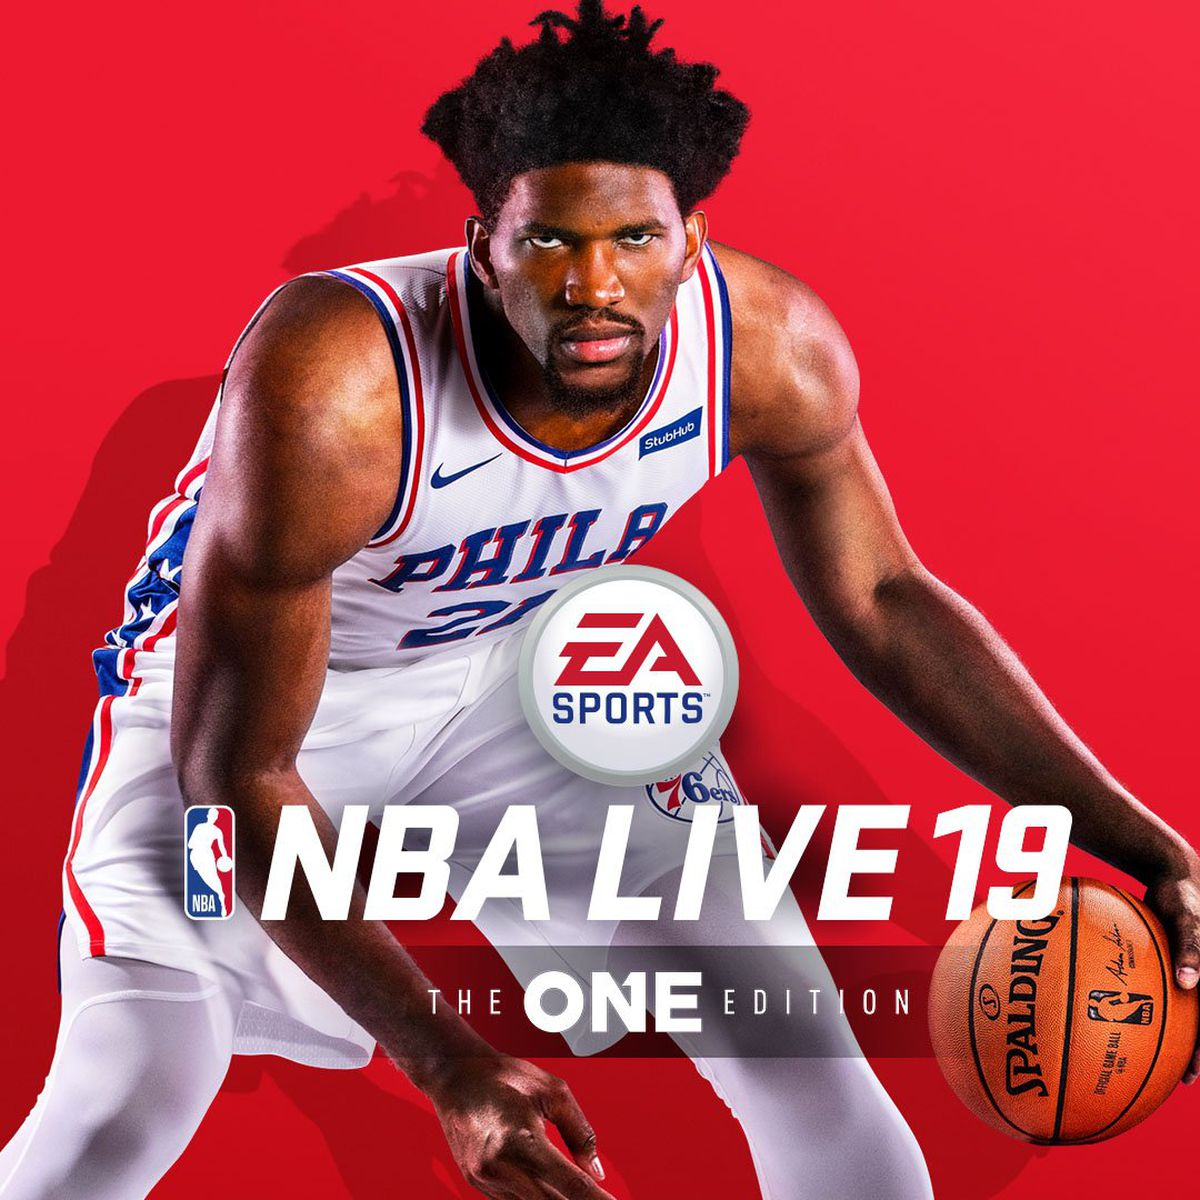 Nba Live 19 Cover Athlete Is Sixers' Joel Embiid Polygon